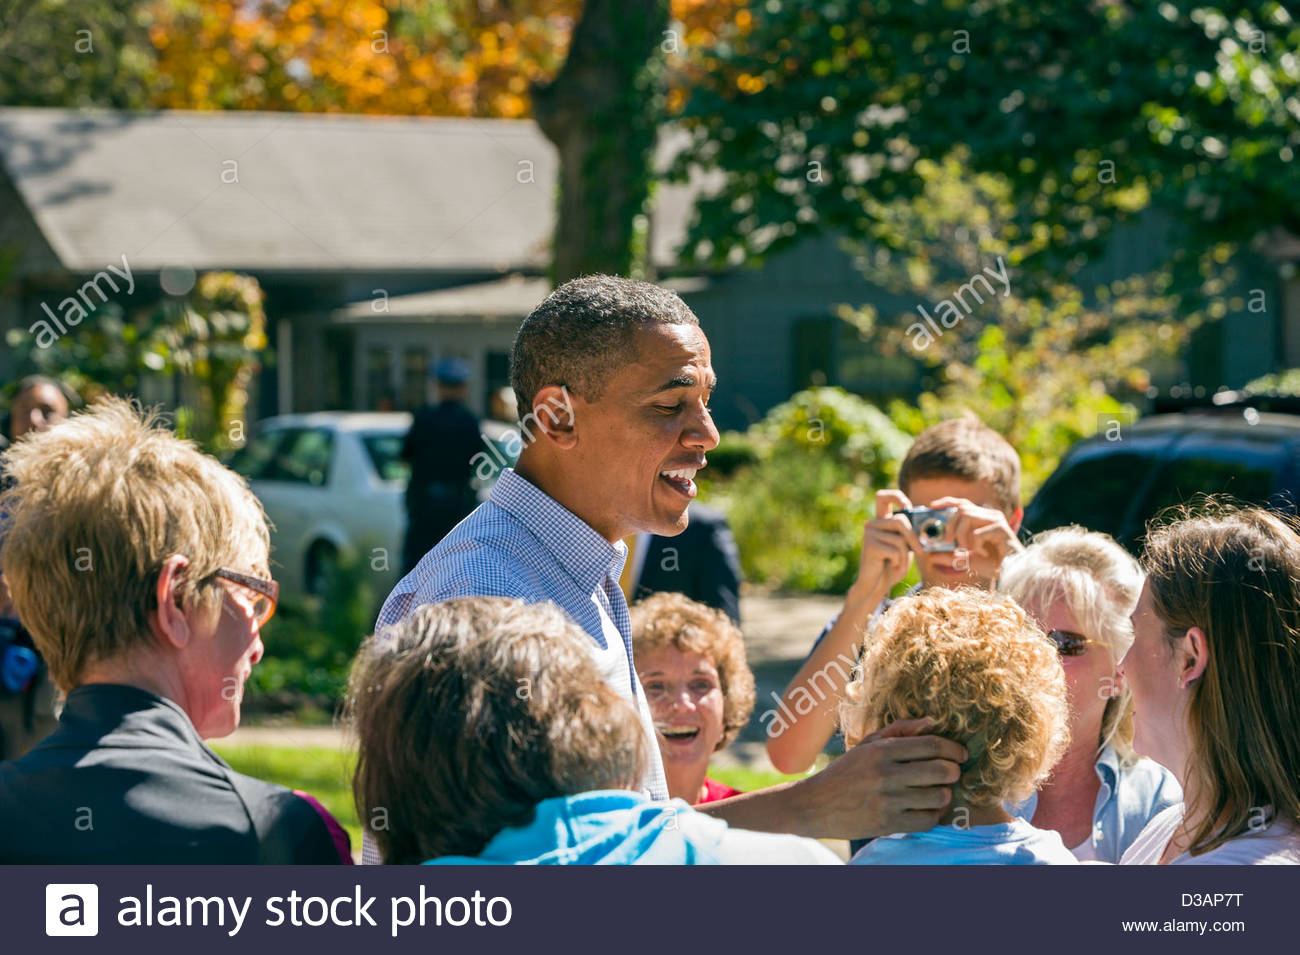 President Barack Obama greets supporters in a Des Moines, Iowa neighborhood during a back yard speech in 2010. - Stock Image